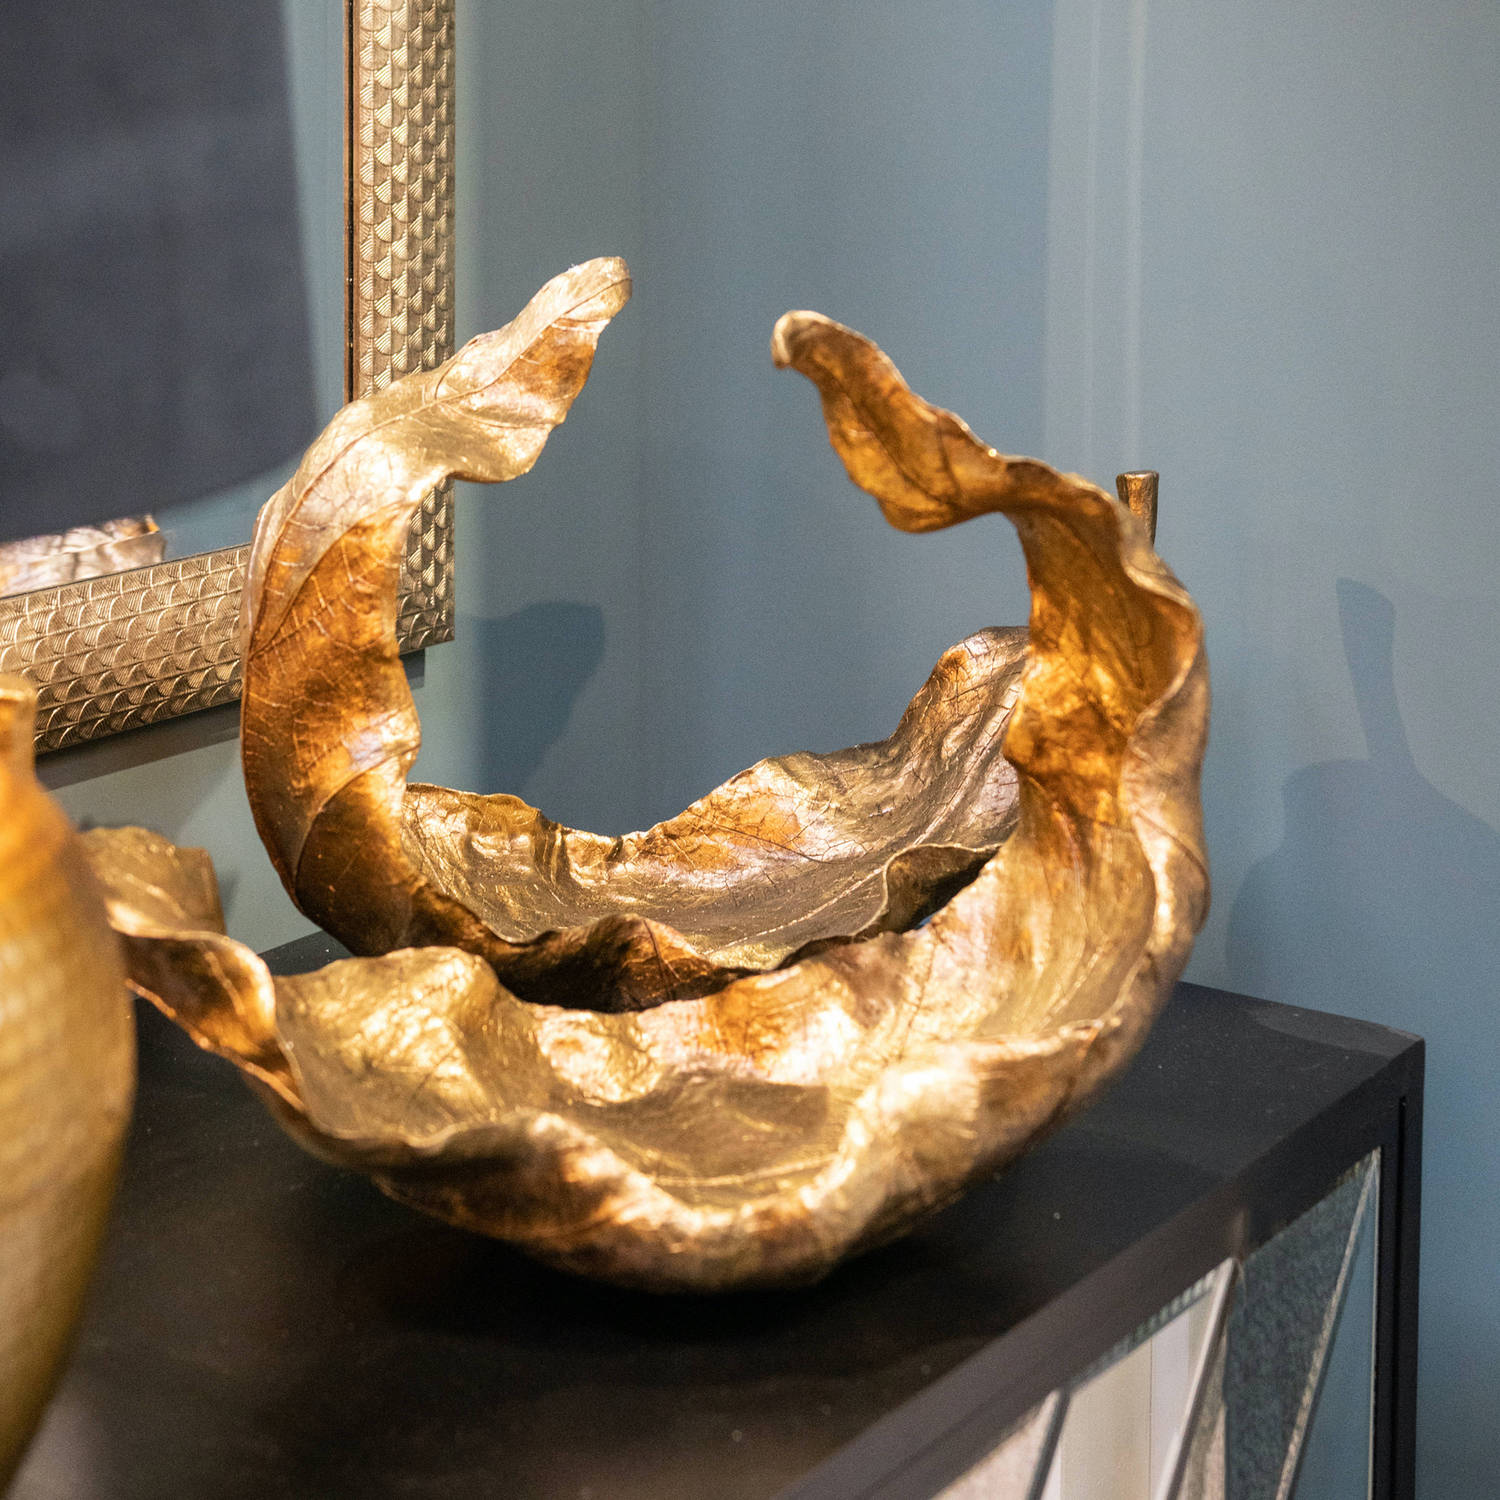 Large Gold Curled Leaf Sculpture by Hill Interiors